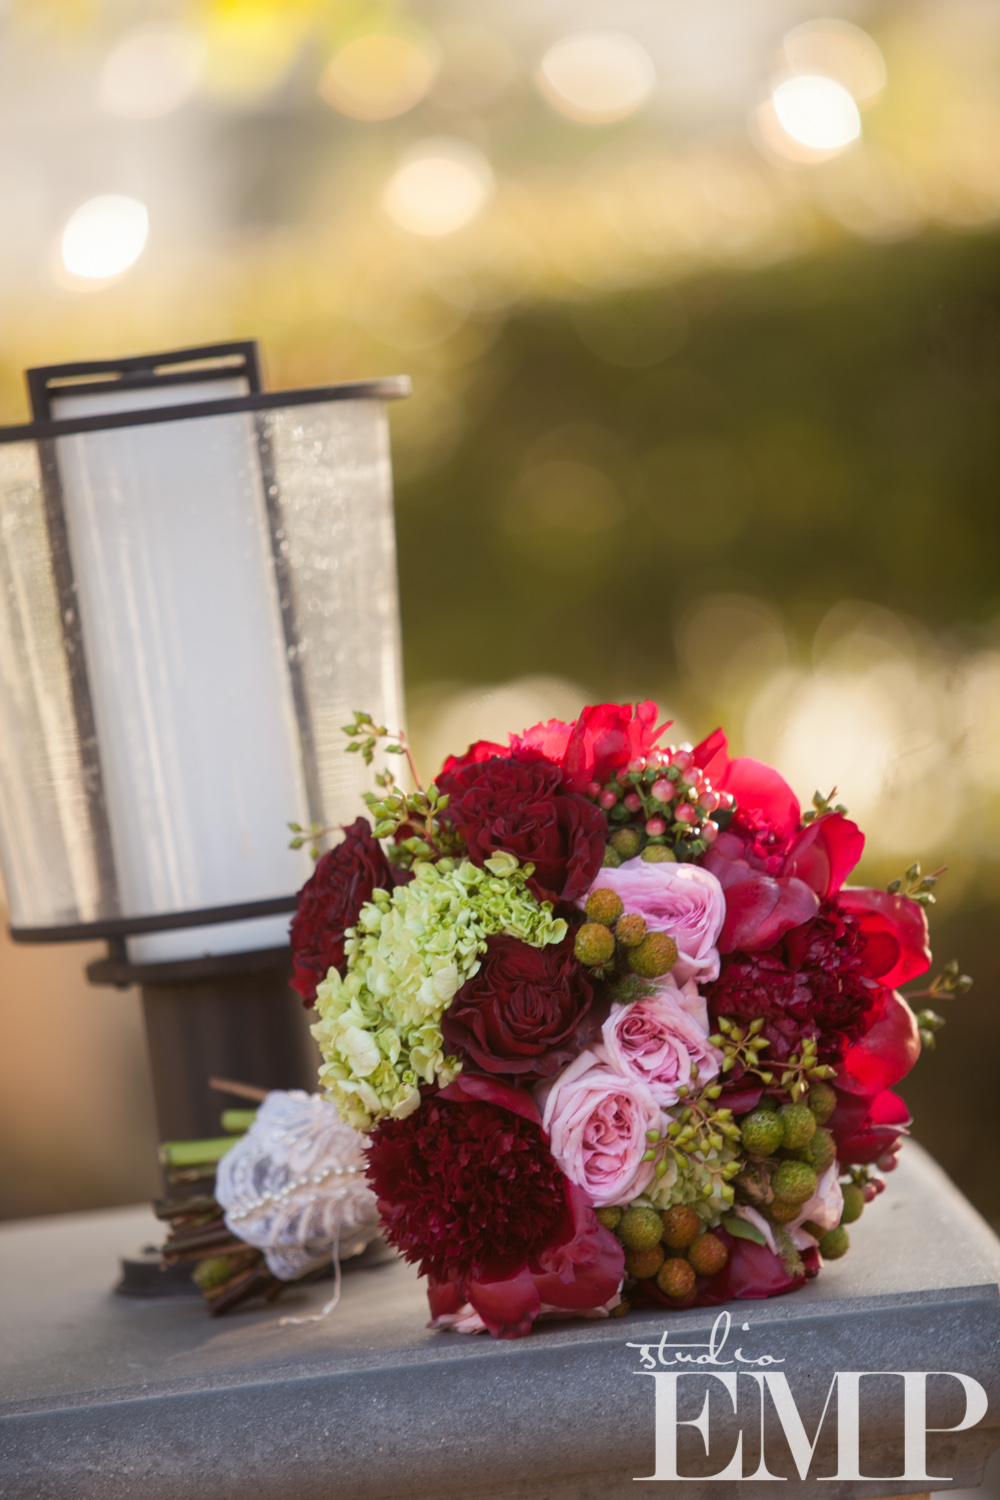 Studio EMP, Hyatt Regency Newport Beach, A Good Affair Wedding & Event Production